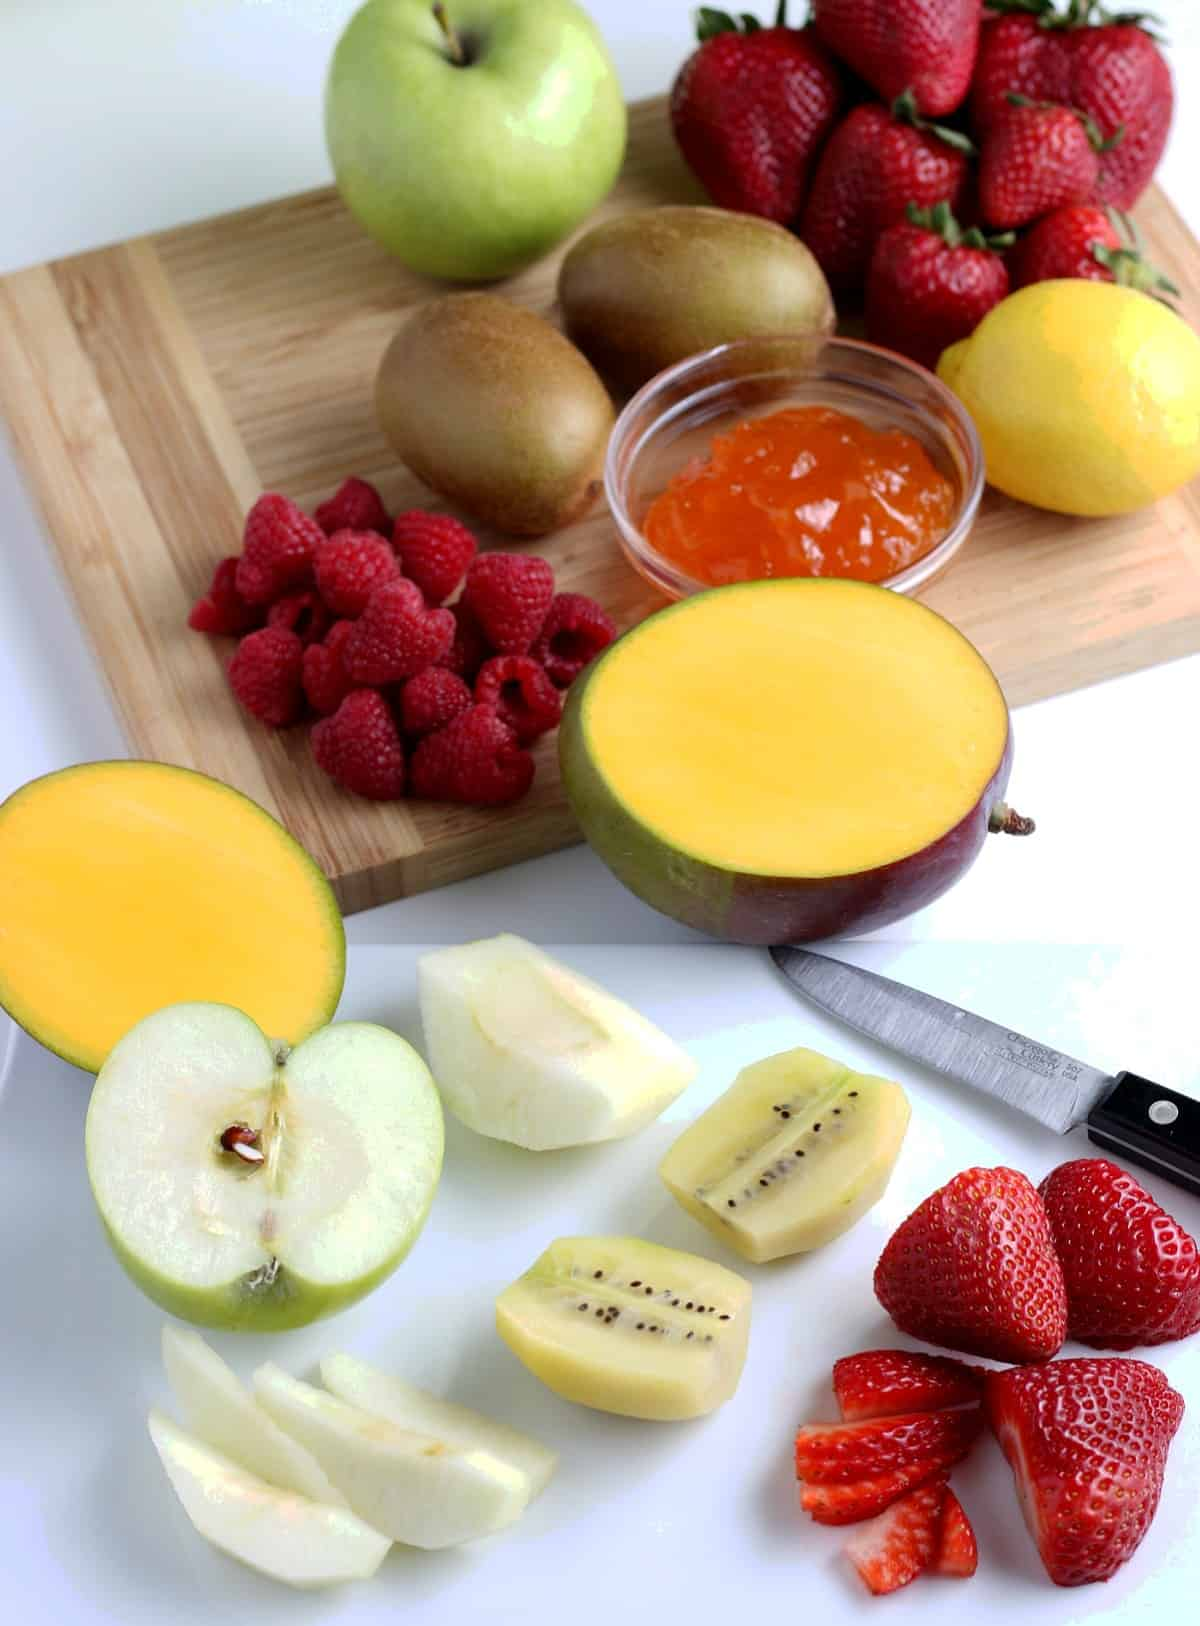 Fruit varieties being diced and sliced on a wooden cutting board with some halves in front.